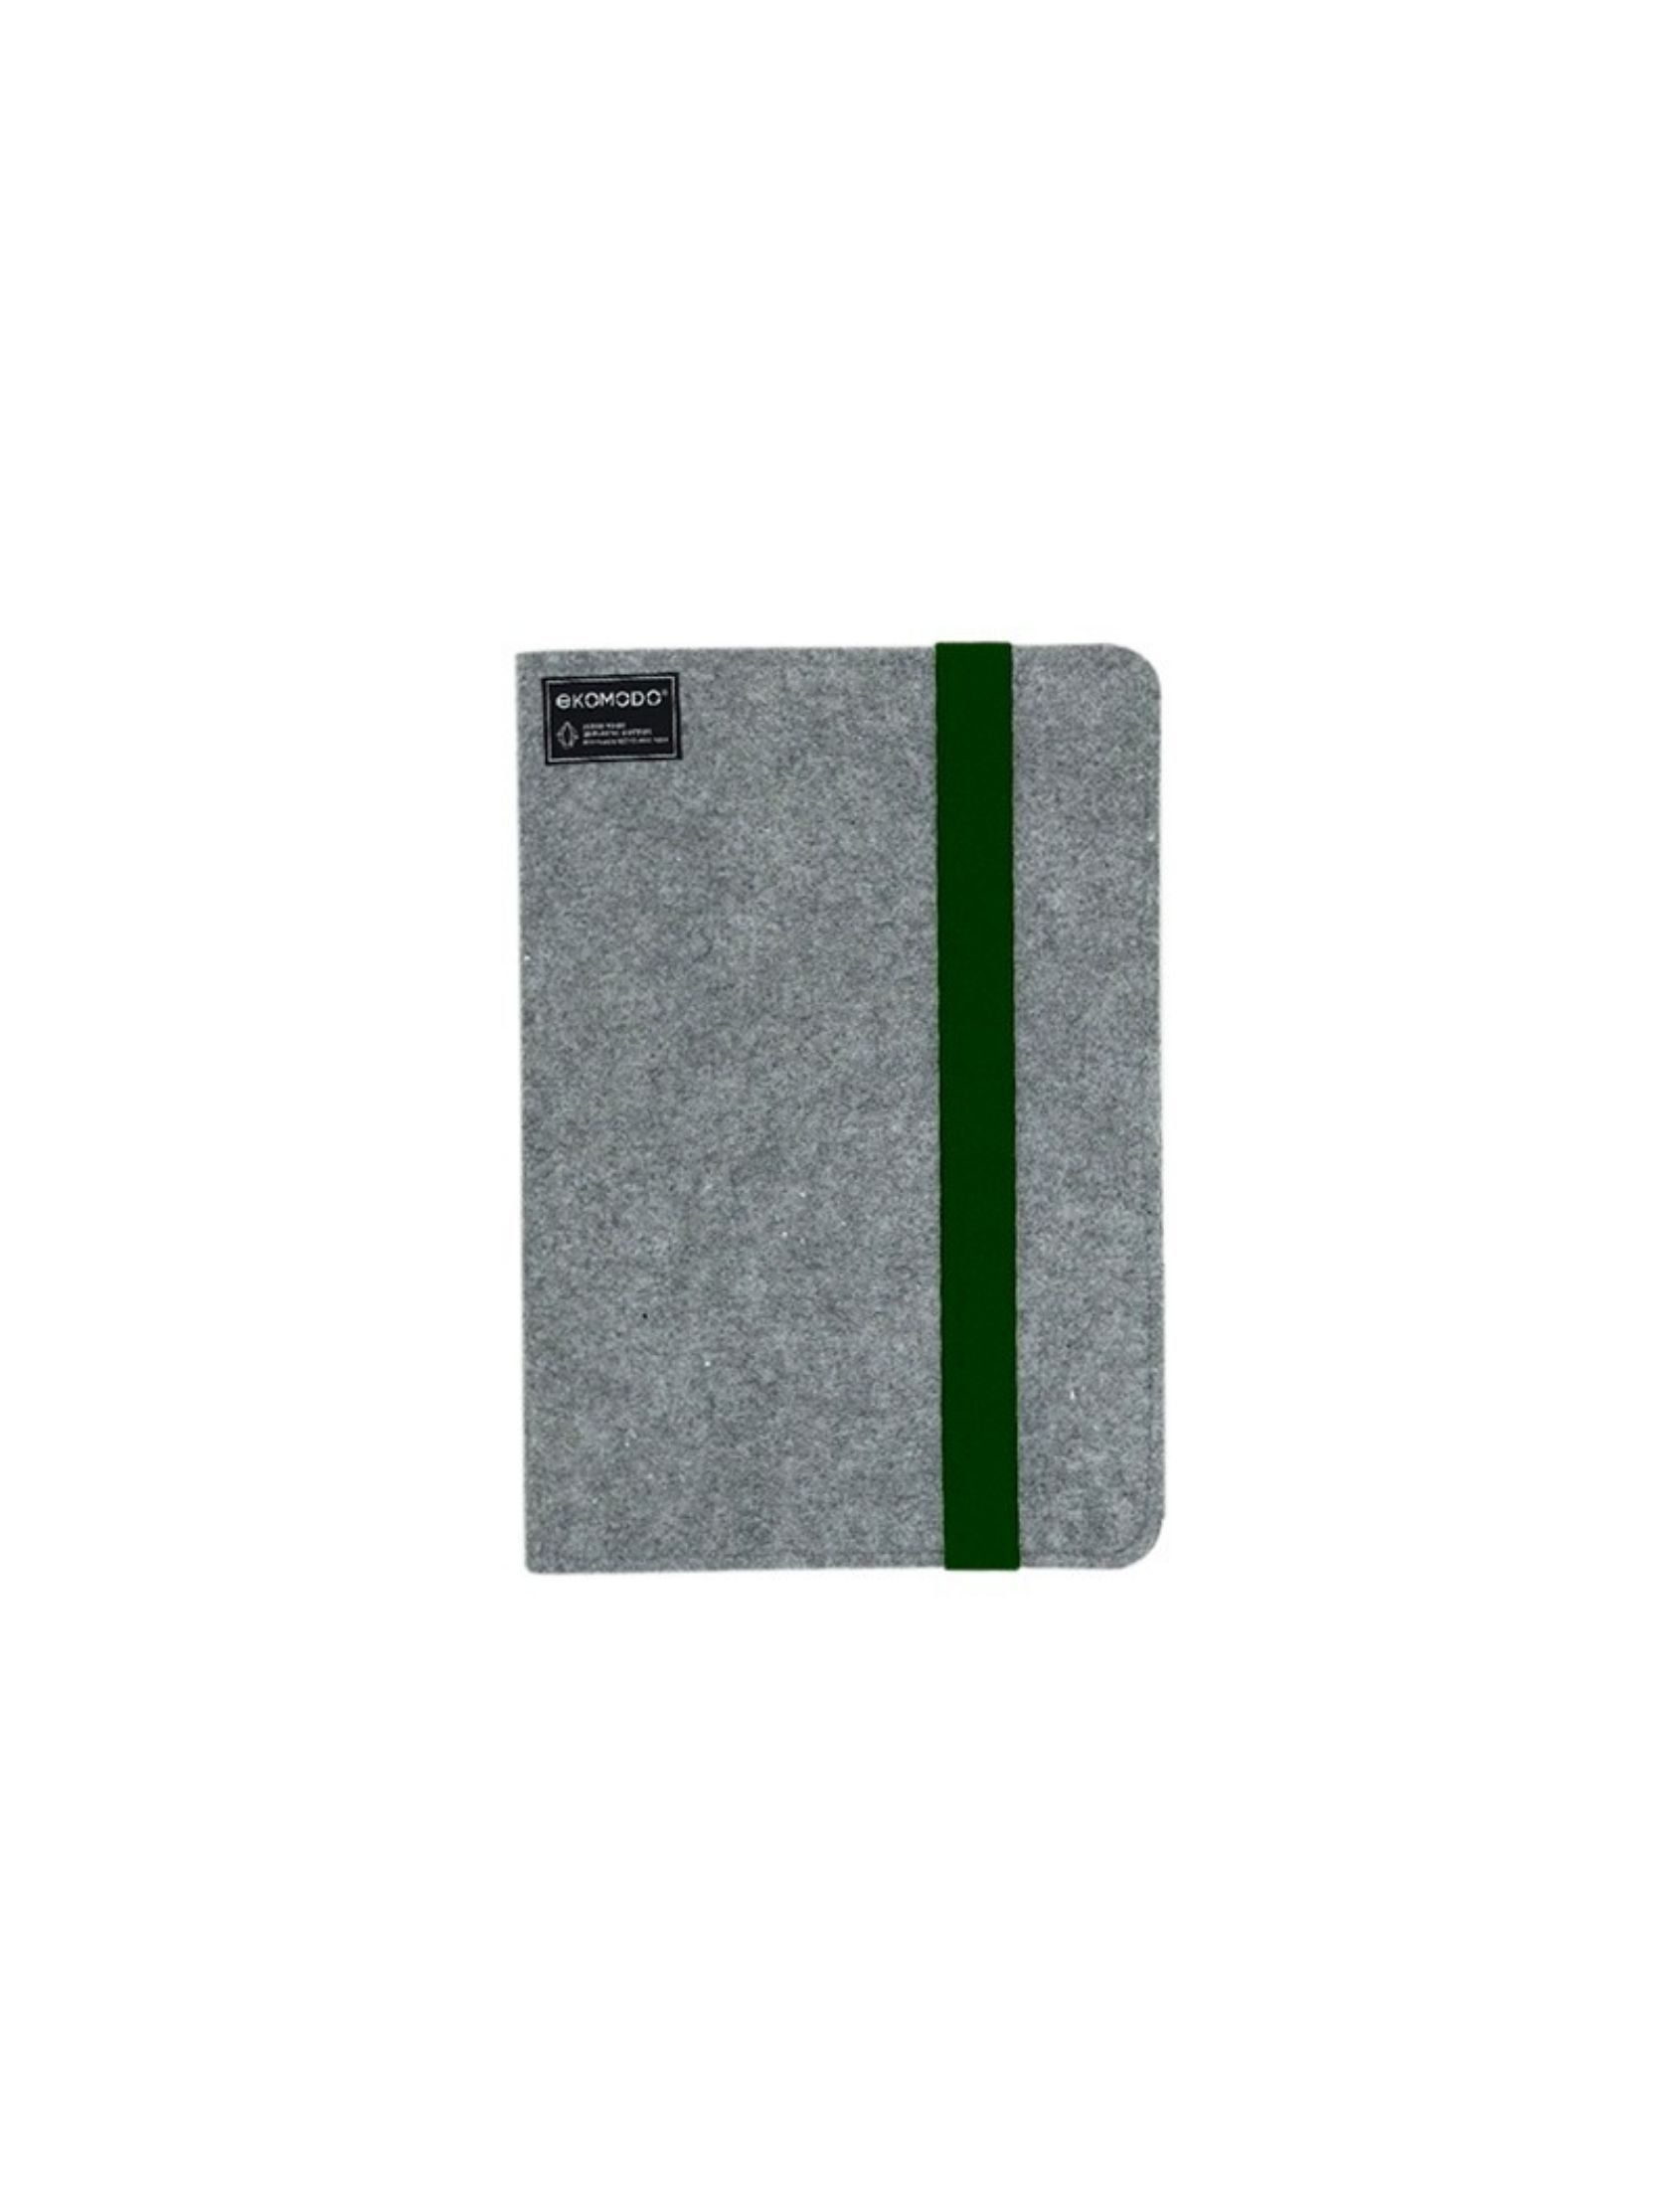 carpeta ofis regular en color gris con fajin de goma verde ideal para documentos el portátil o la tablet